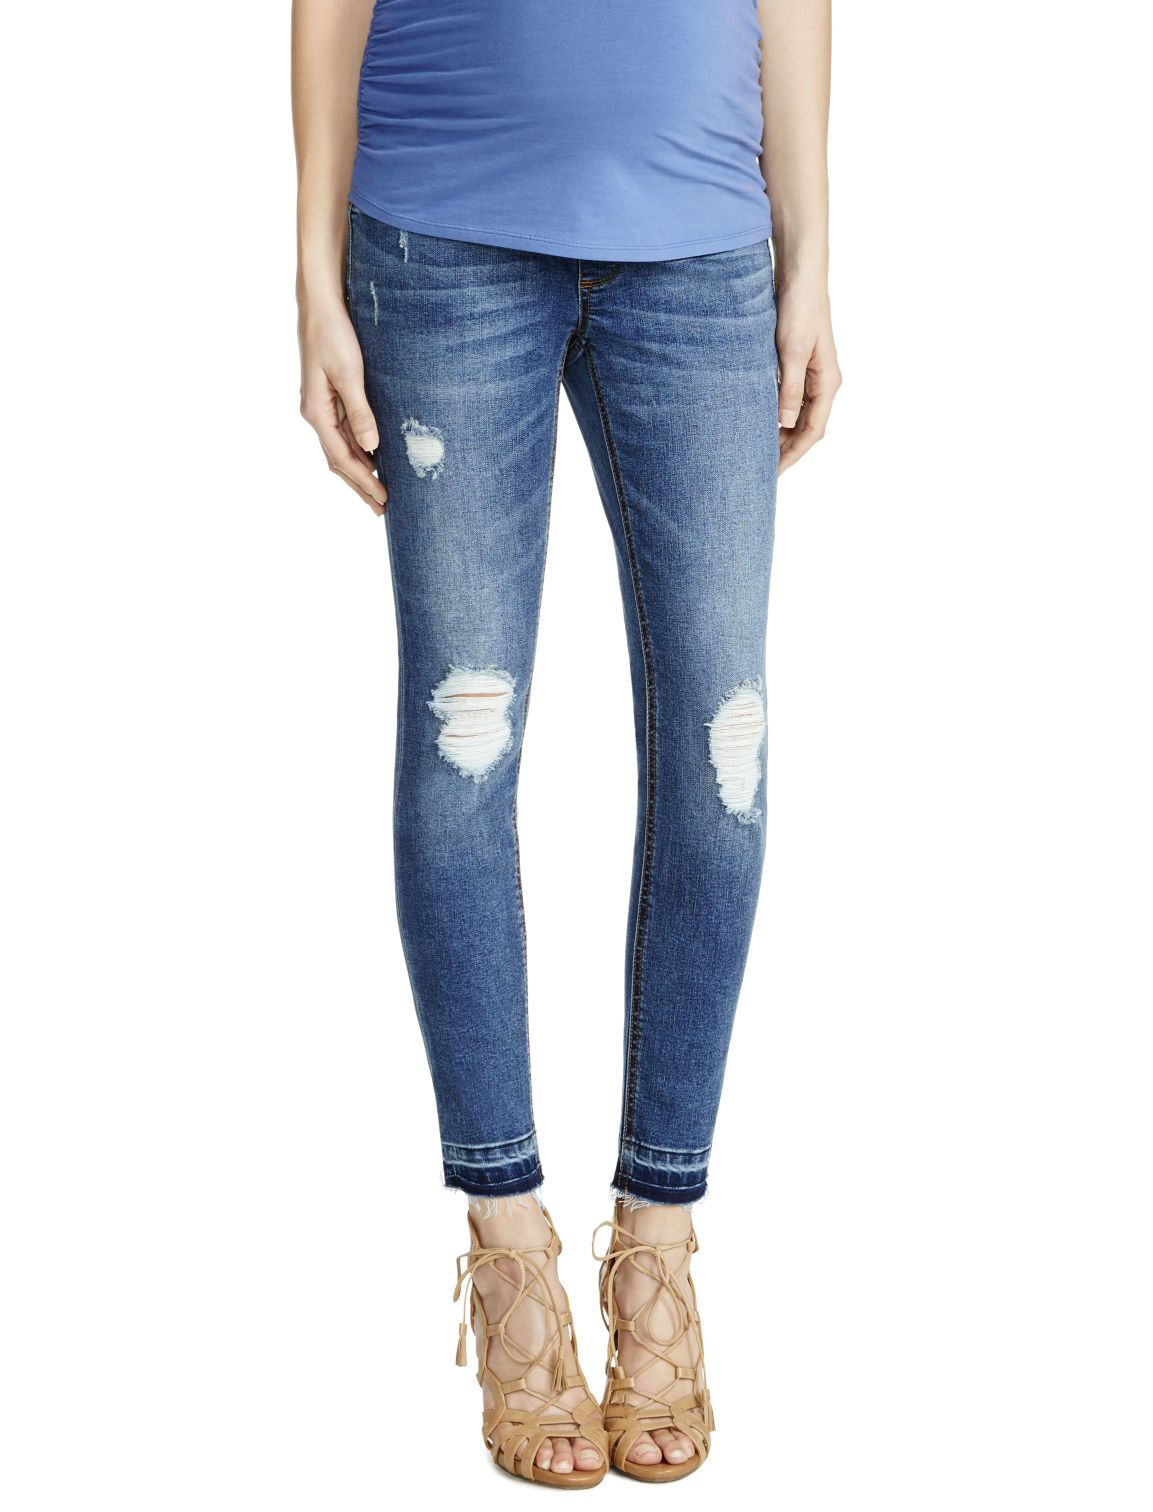 2be39095aa4c2 The perfect everyday blue jean | Secret fit belly 5 pocket straight leg  maternity jeans by Jessica Simpson available at Motherhood Maternity